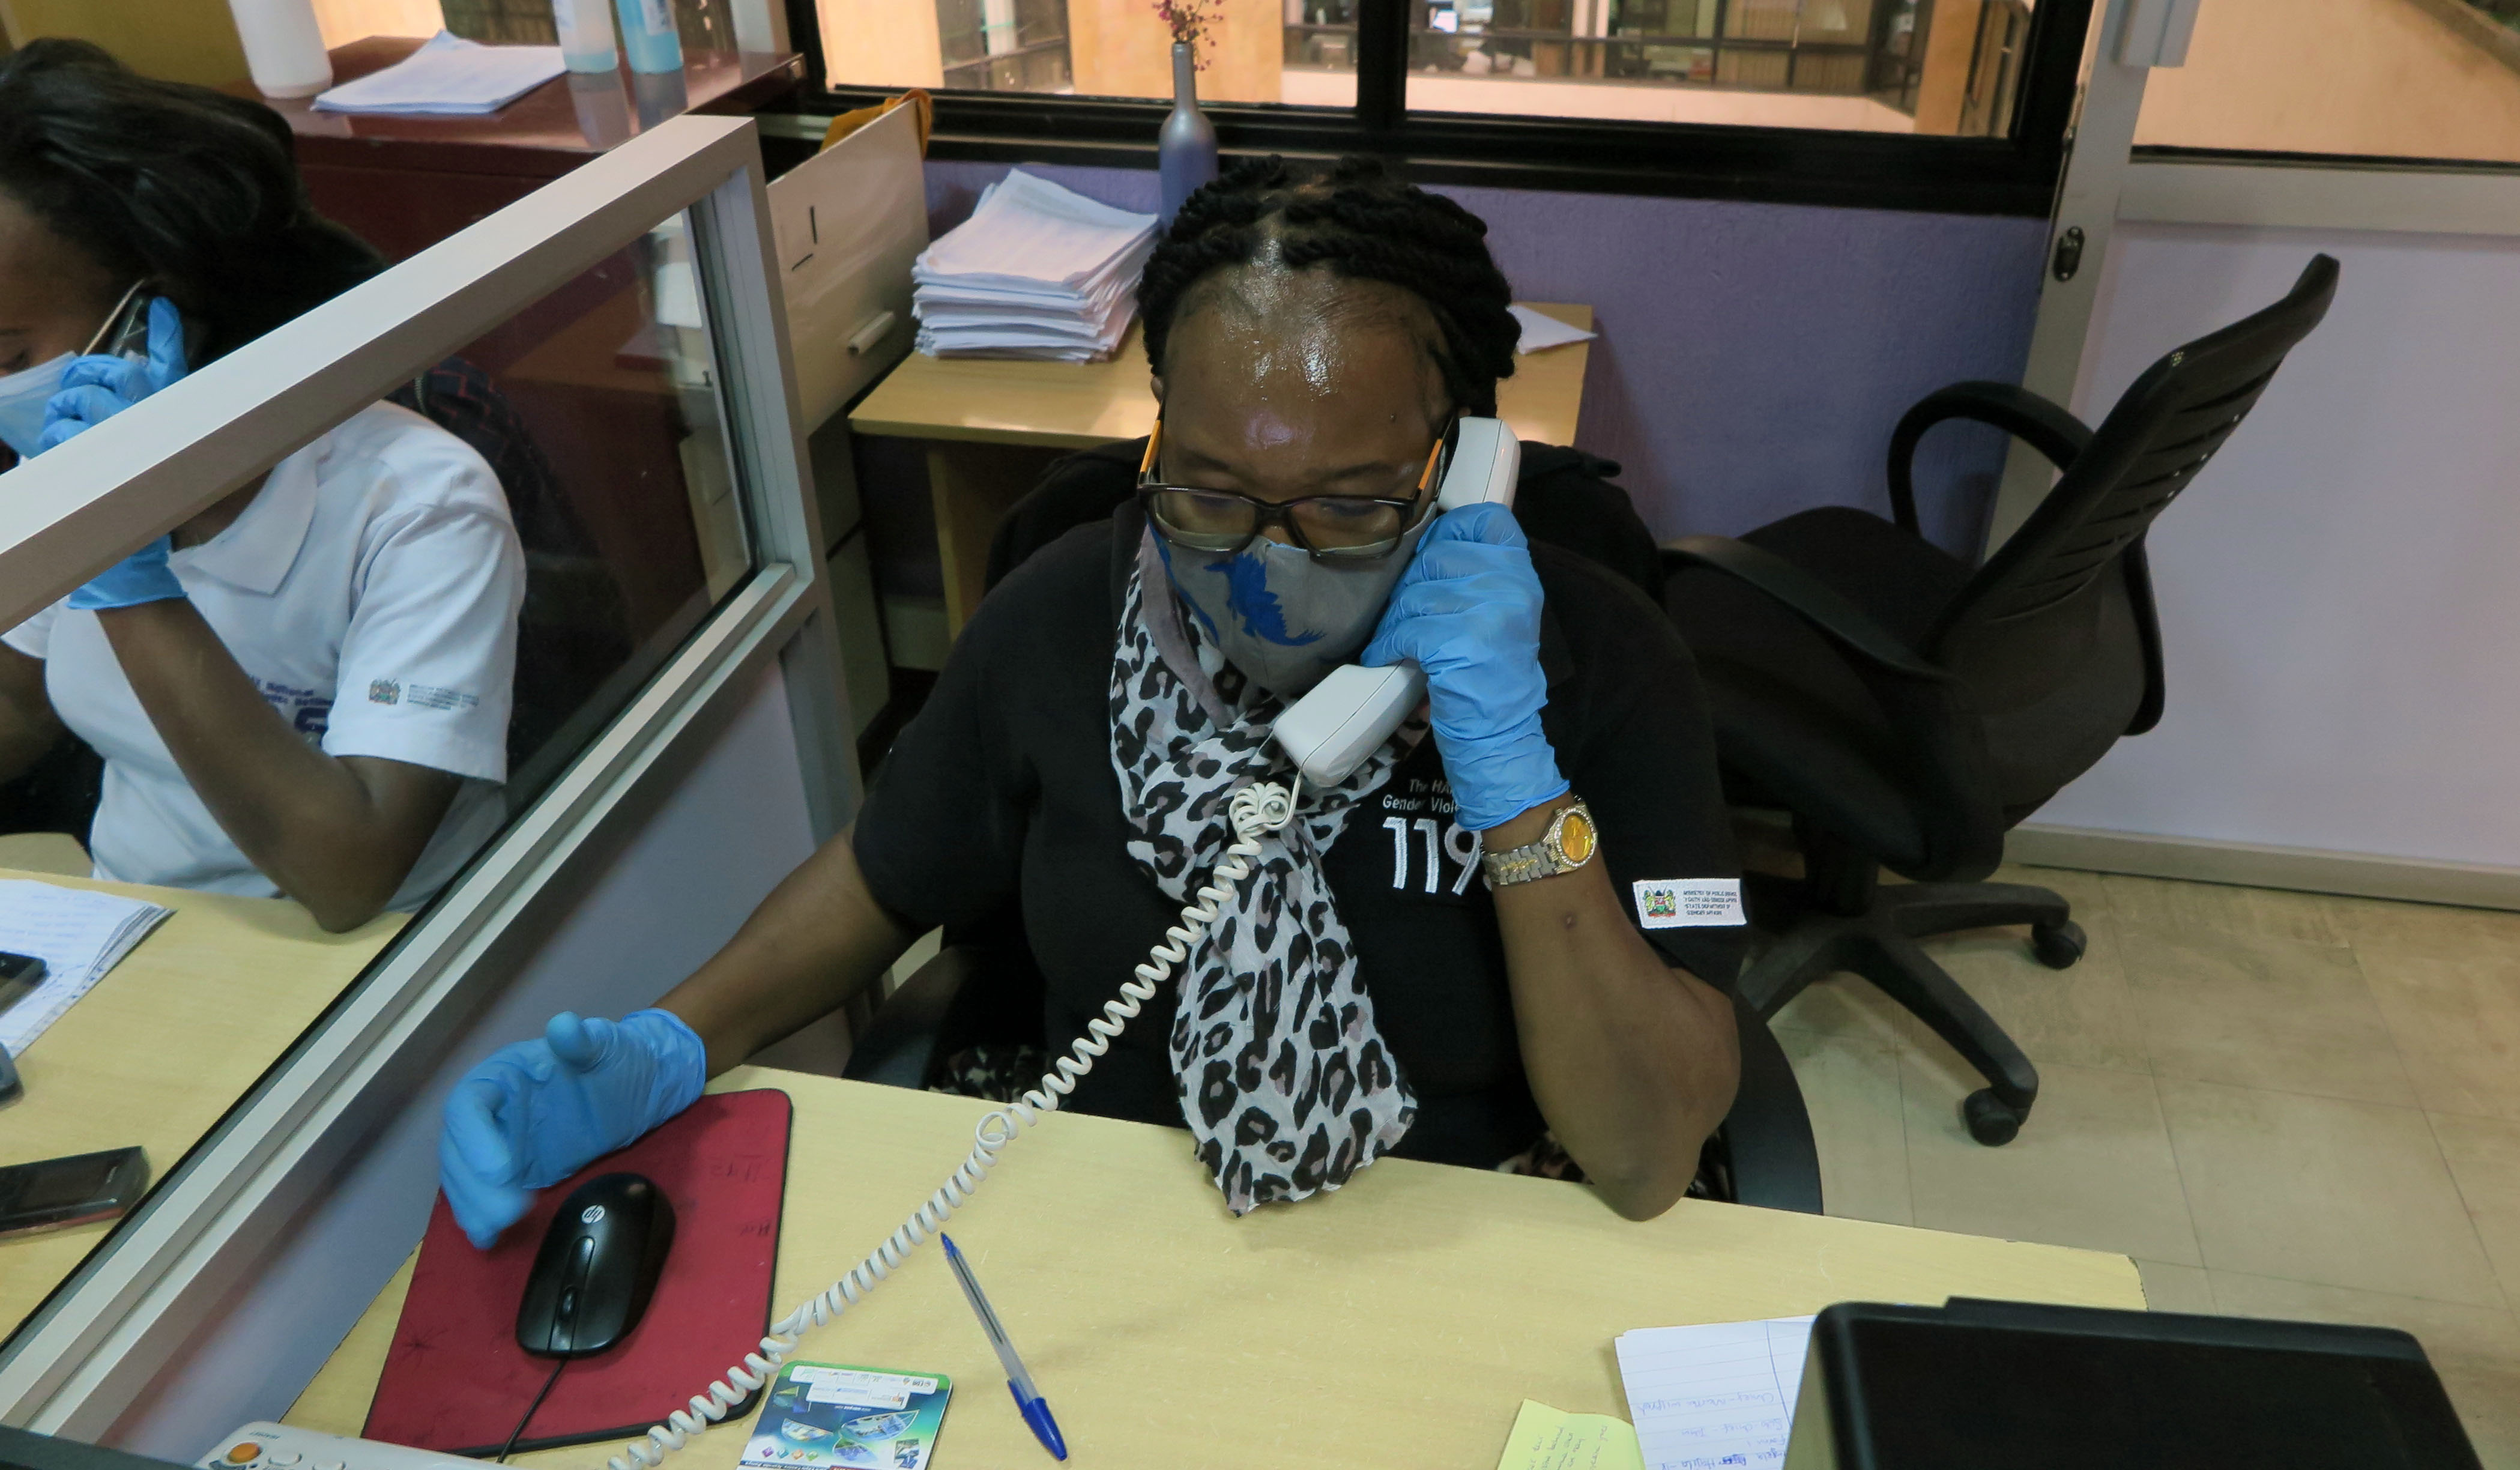 A tele-counselor, June (named change for privacy and protection), takes a call at the call centre.